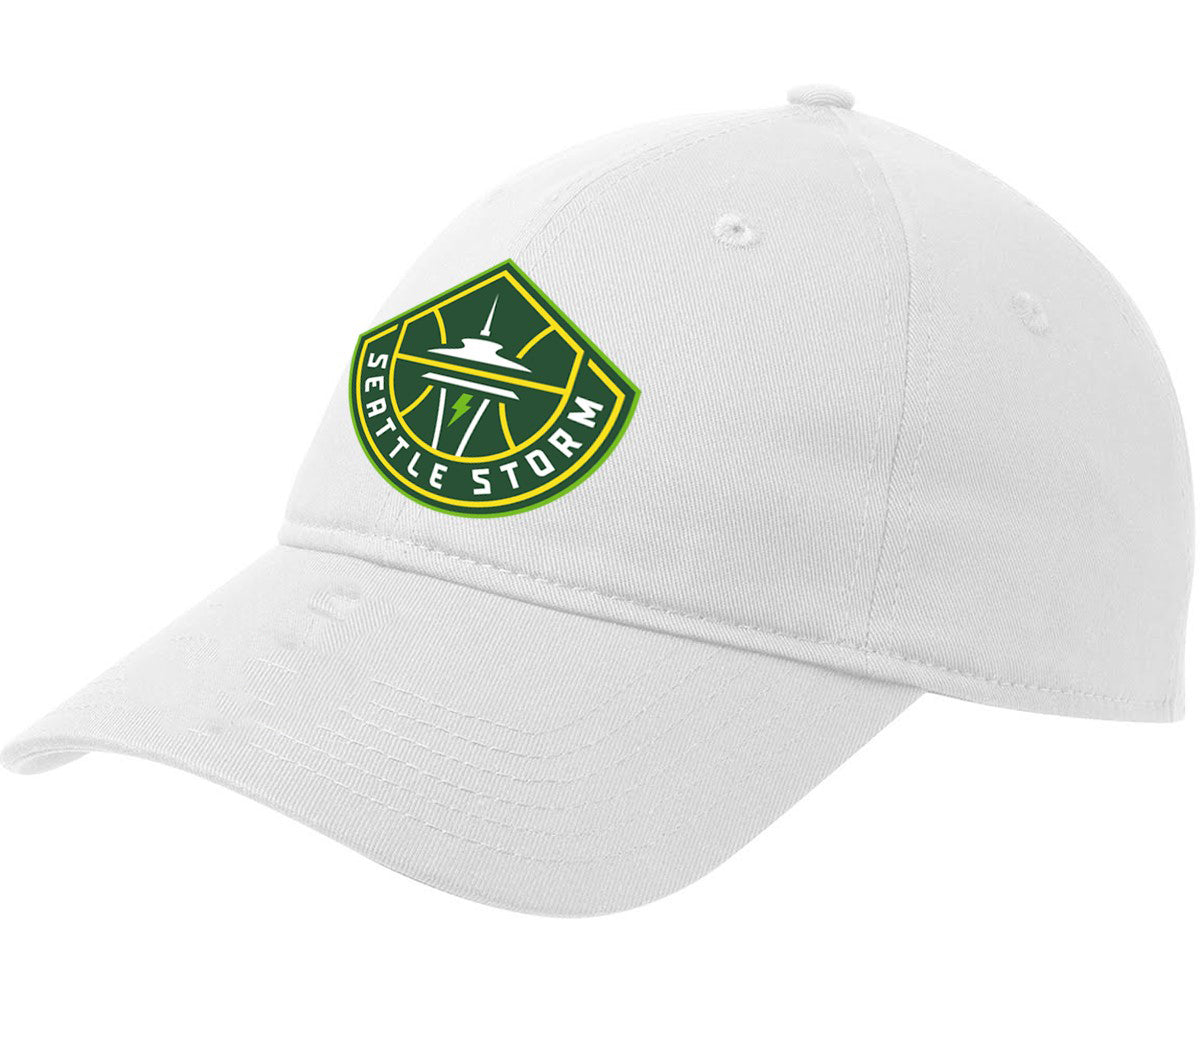 Global White Crew Cap